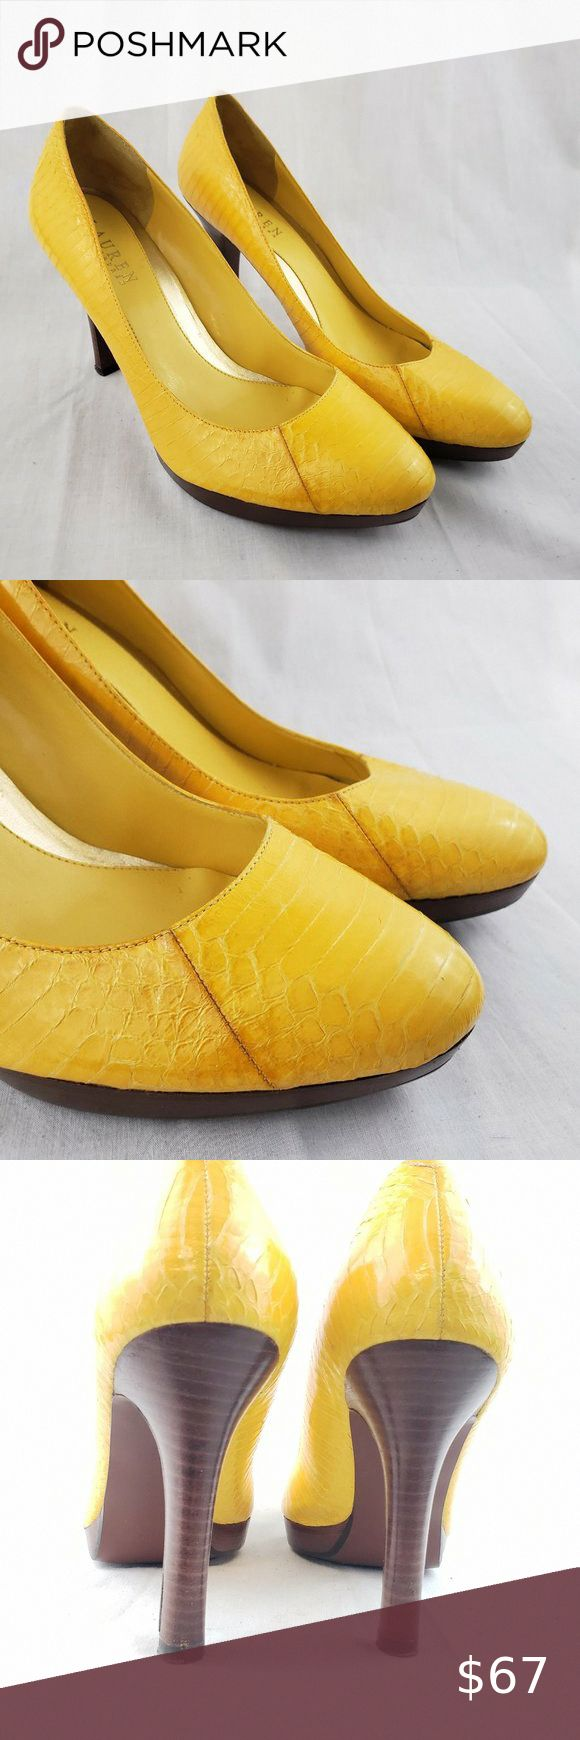 Ralph Lauren Yellow High Heel Shoes Ralph Lauren Yellow High Heel Shoes Platform Pumps Snakeskin Style sz 9.5. Condition…